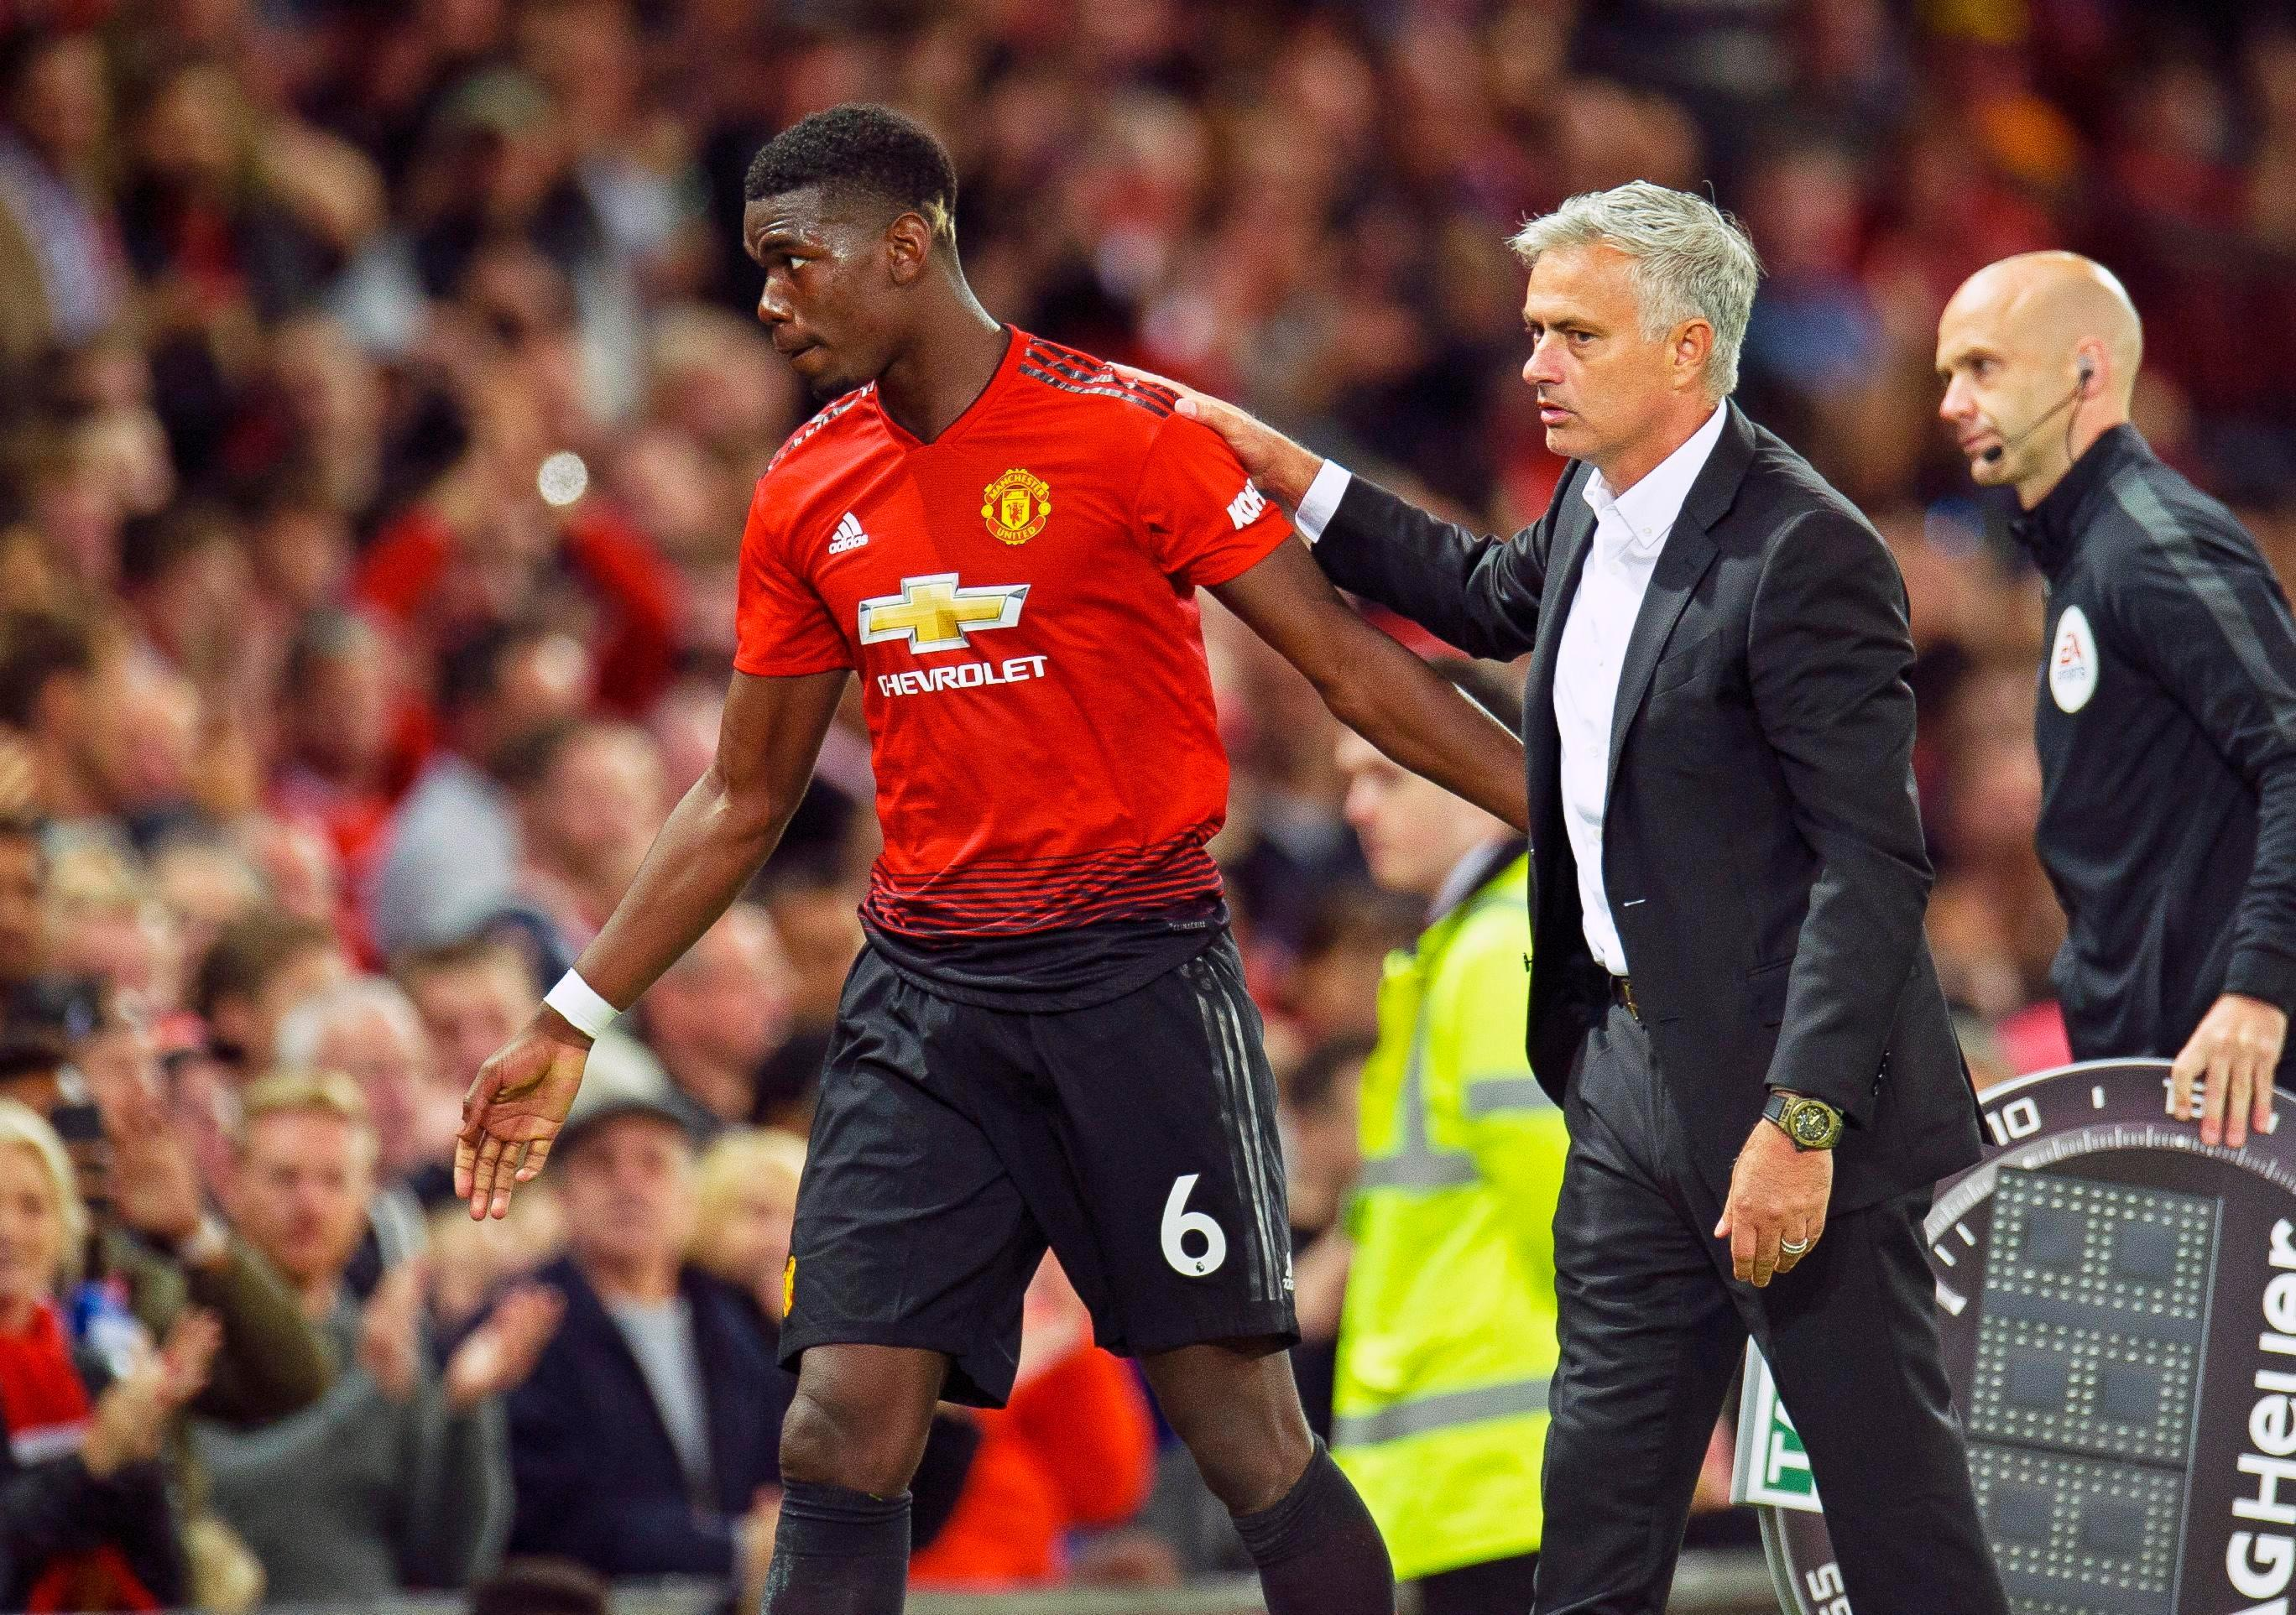 Paul Pogba is apparently going nowhere despite a growing rift with Mourinho